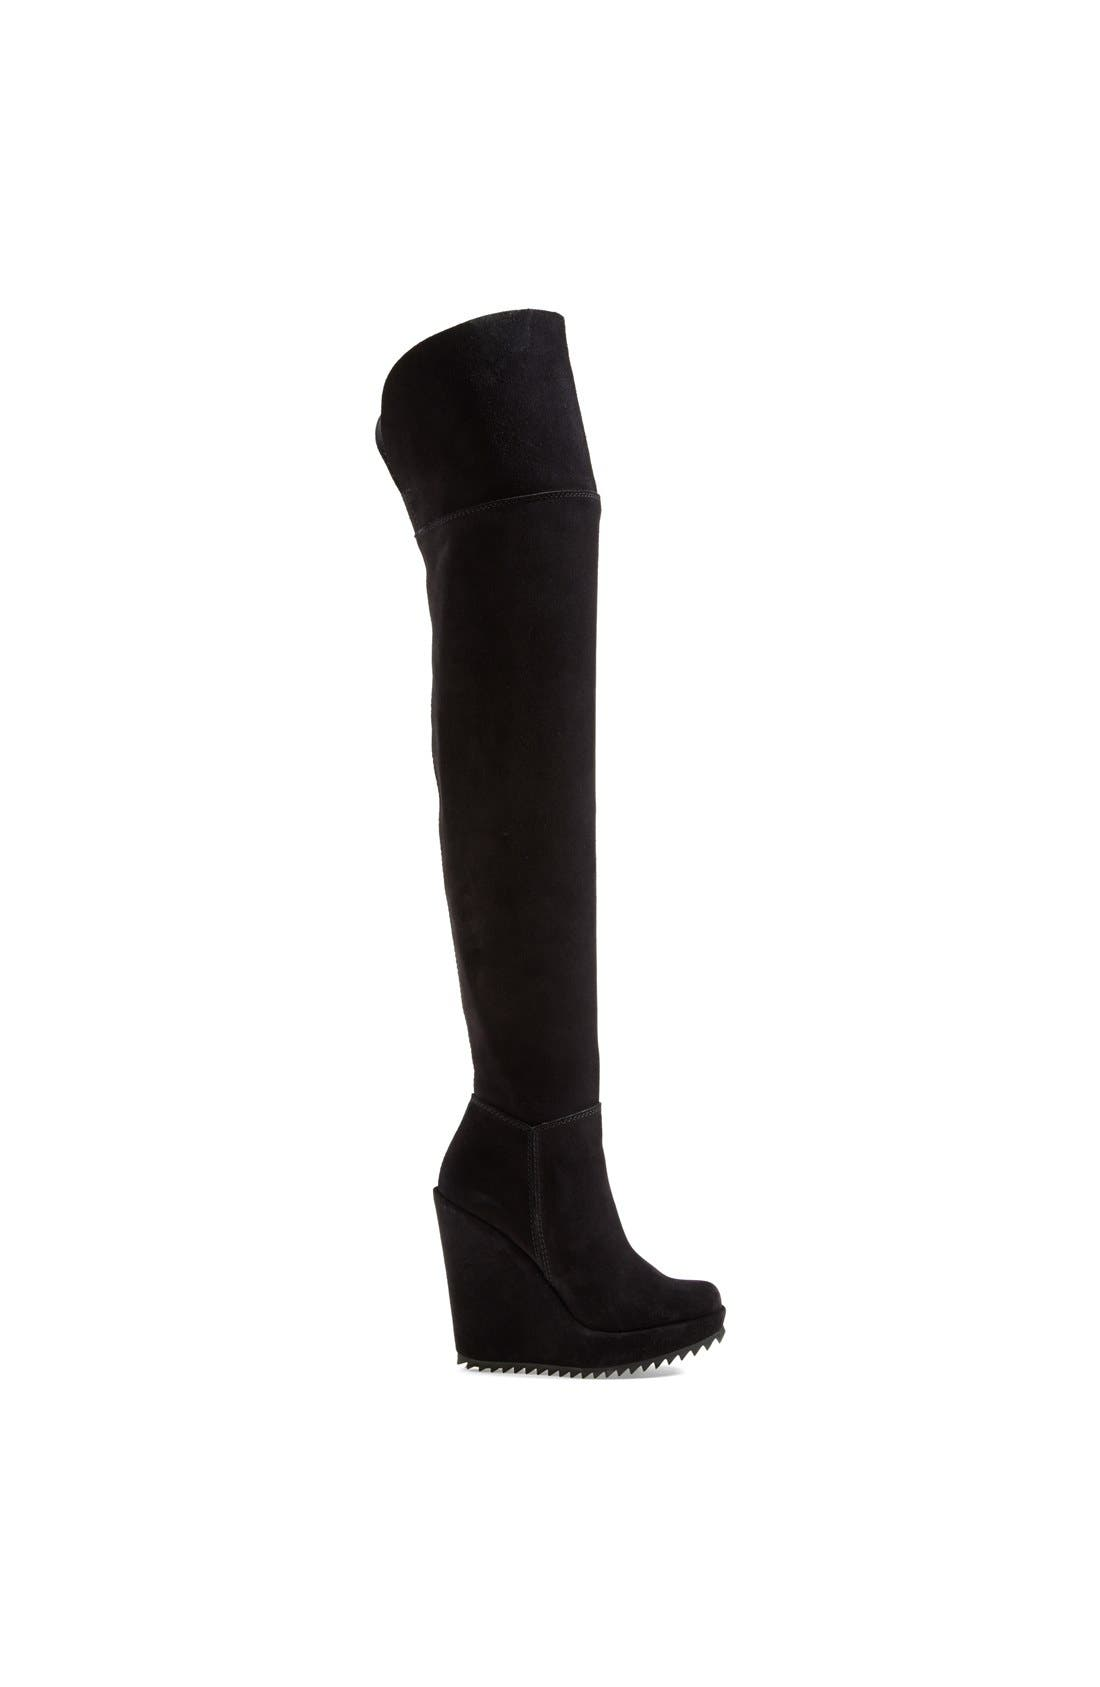 'Vanne' Over-the-Knee Boot,                             Alternate thumbnail 4, color,                             001